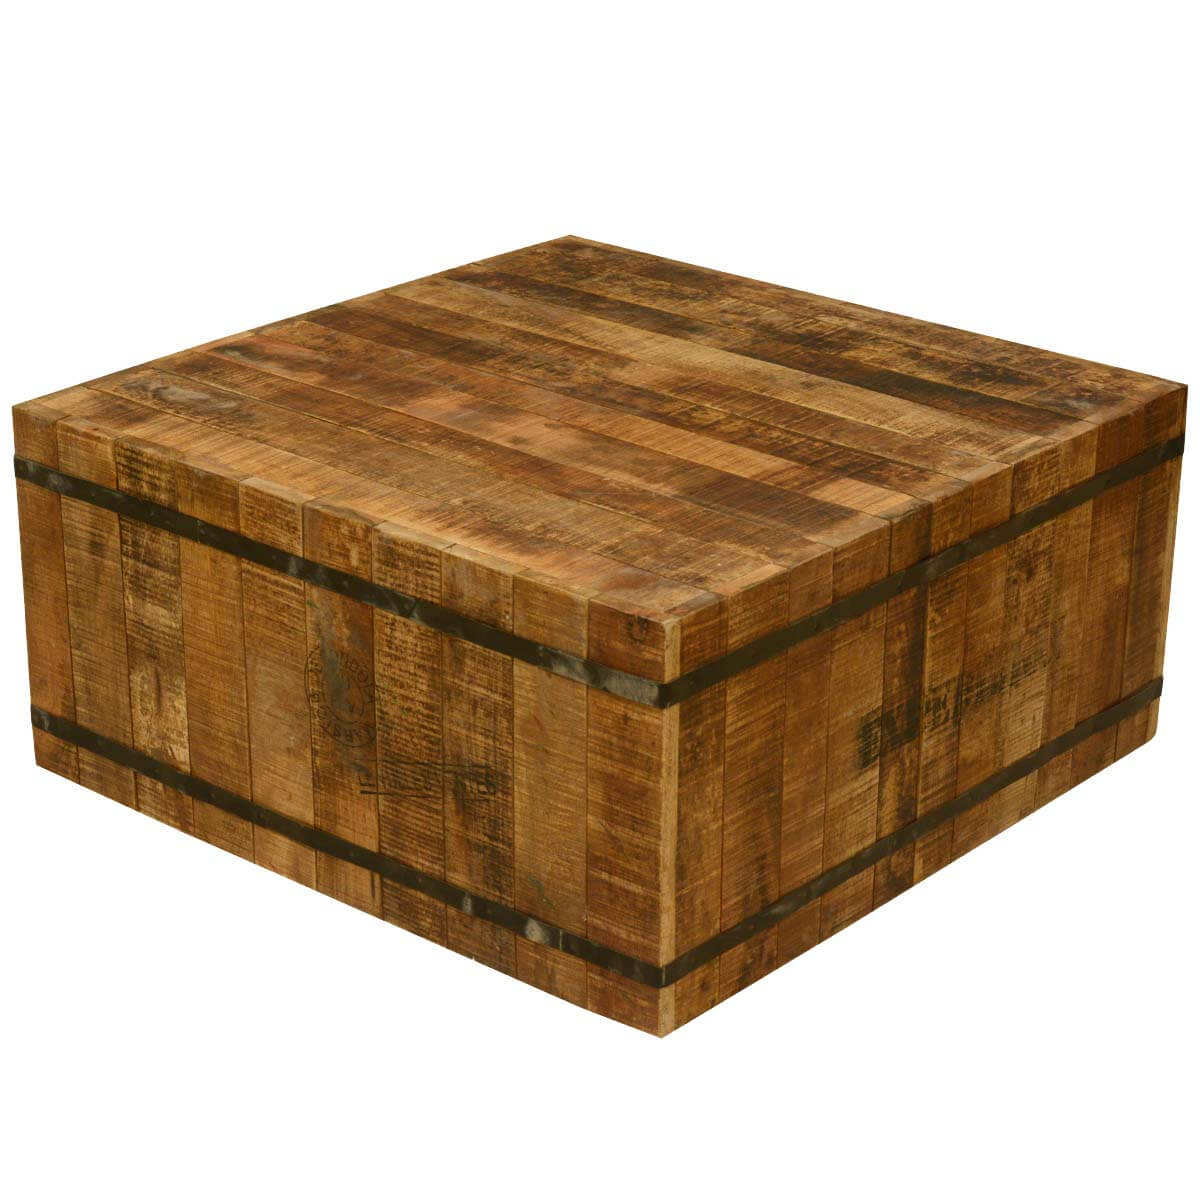 Reclaimed Wood And Metal Coffee Table: Hand Crafted Rustic Reclaimed Wood And Iron Coffee Table